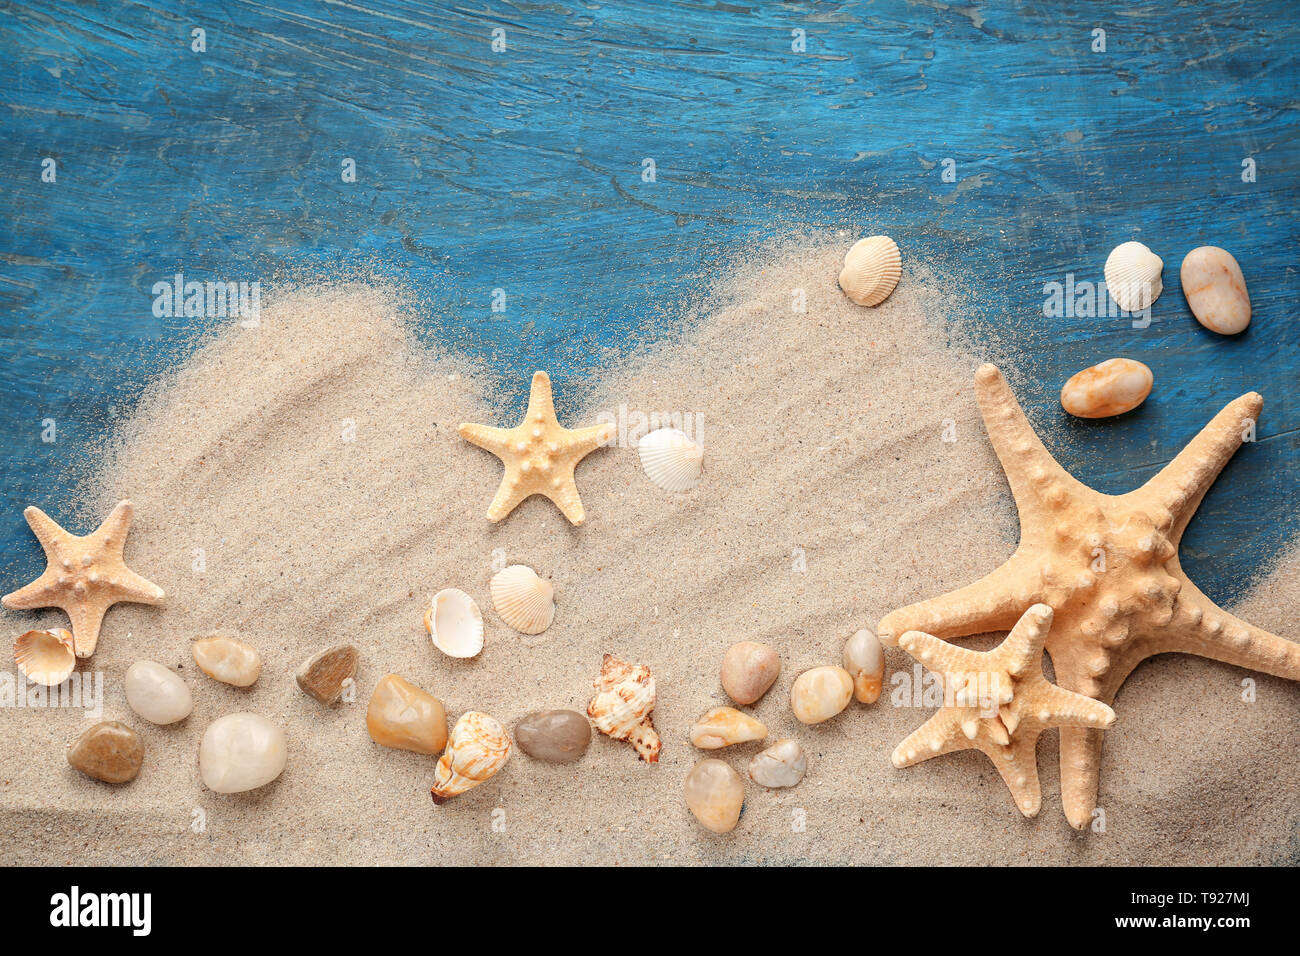 Composition with different sea shells and sand on color background - Stock Image